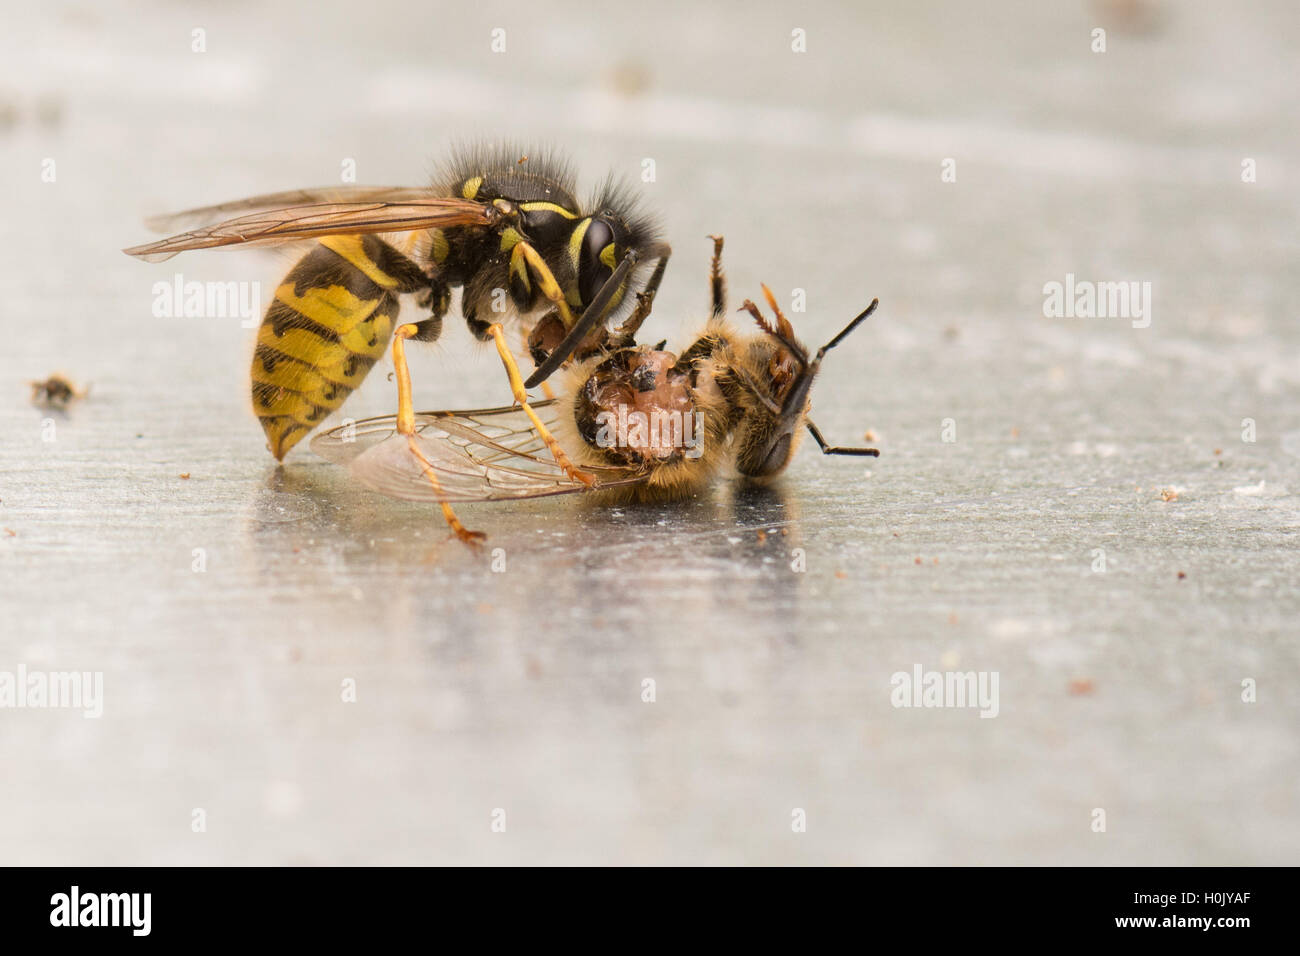 Wasp (Vespula) eating a honey bee that is still alive and moving - Scotland, UK - Stock Image